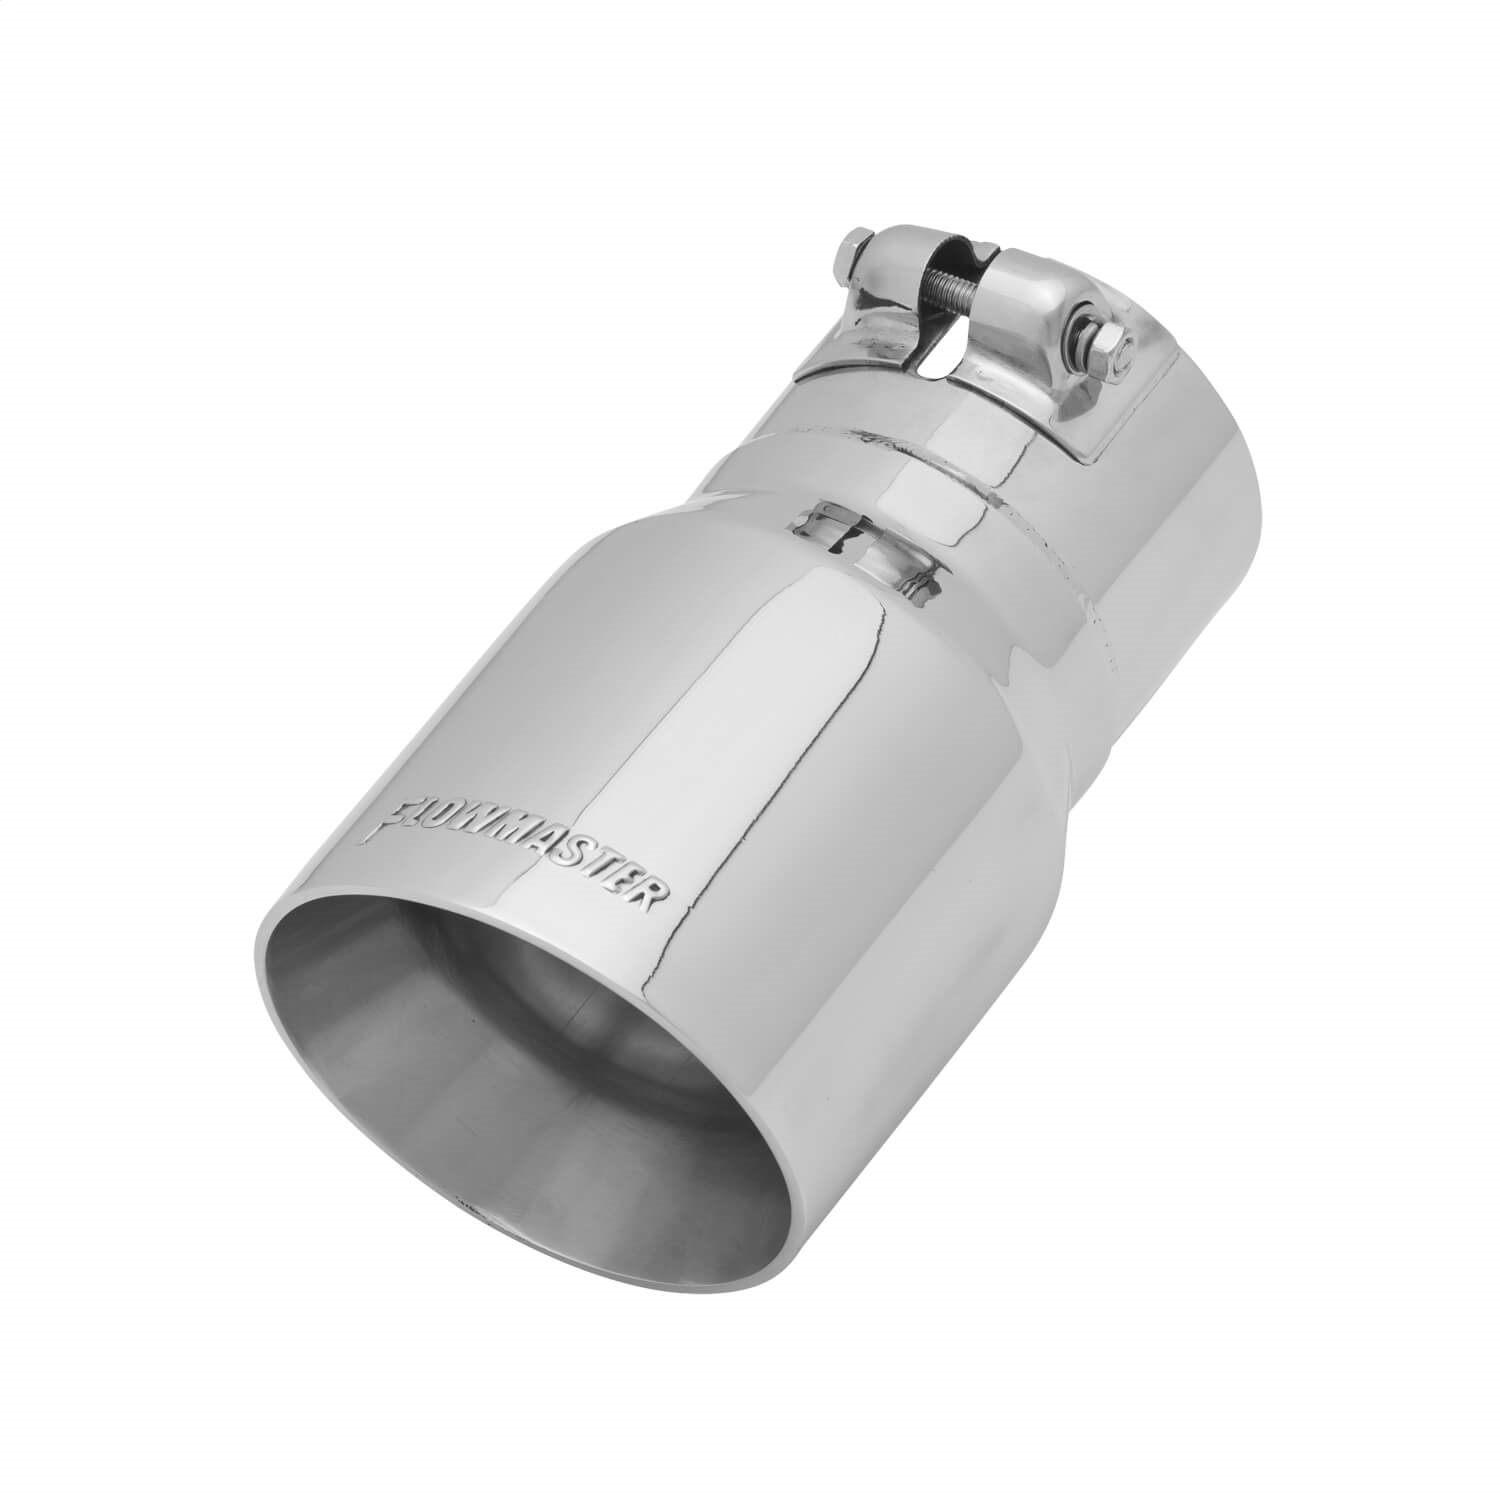 Flowmaster 15377 Stainless Steel Exhaust Tip